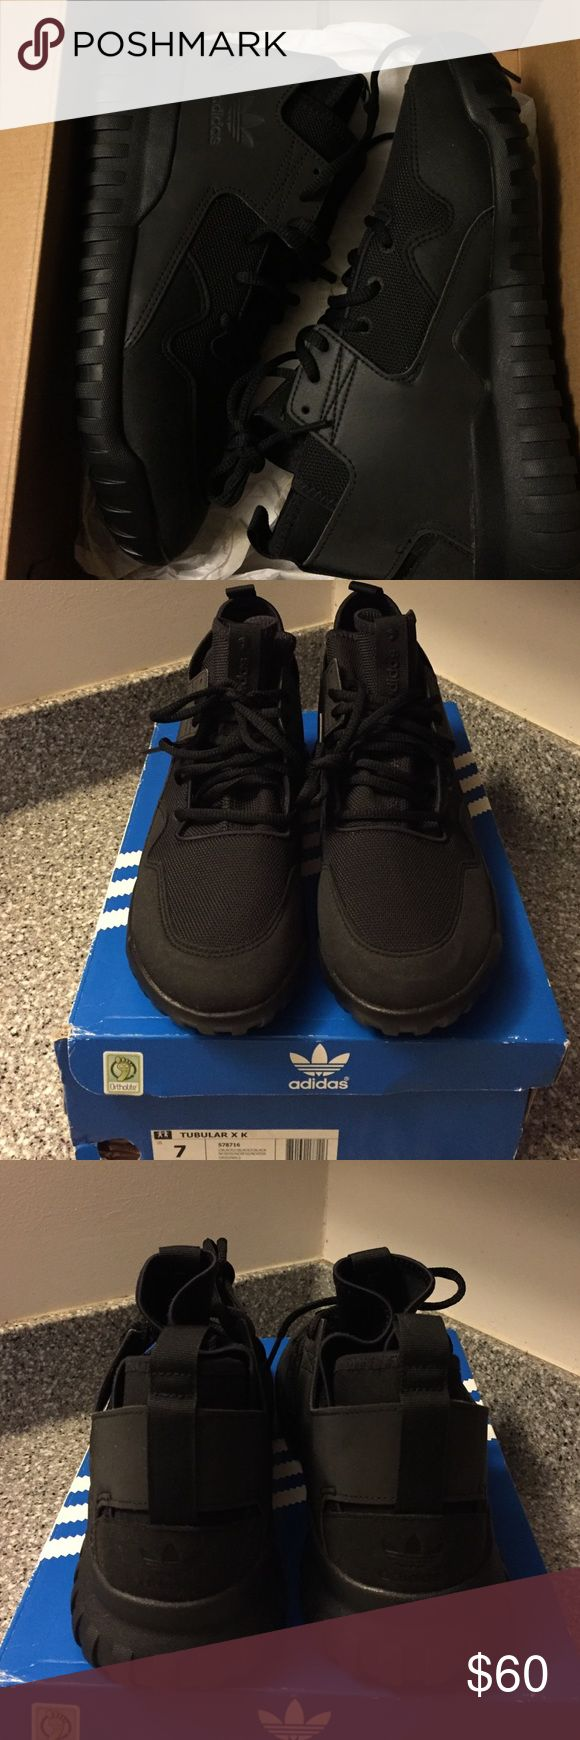 NIB Adidas Tubular Yeezy Shoes 7 8.5 New w box New in box Adidas tubular shoes.  Size 7 mens so it would fit a 8.5 in women's.  Nice Yeezy look but is the tubular style! adidas Shoes Athletic Shoes